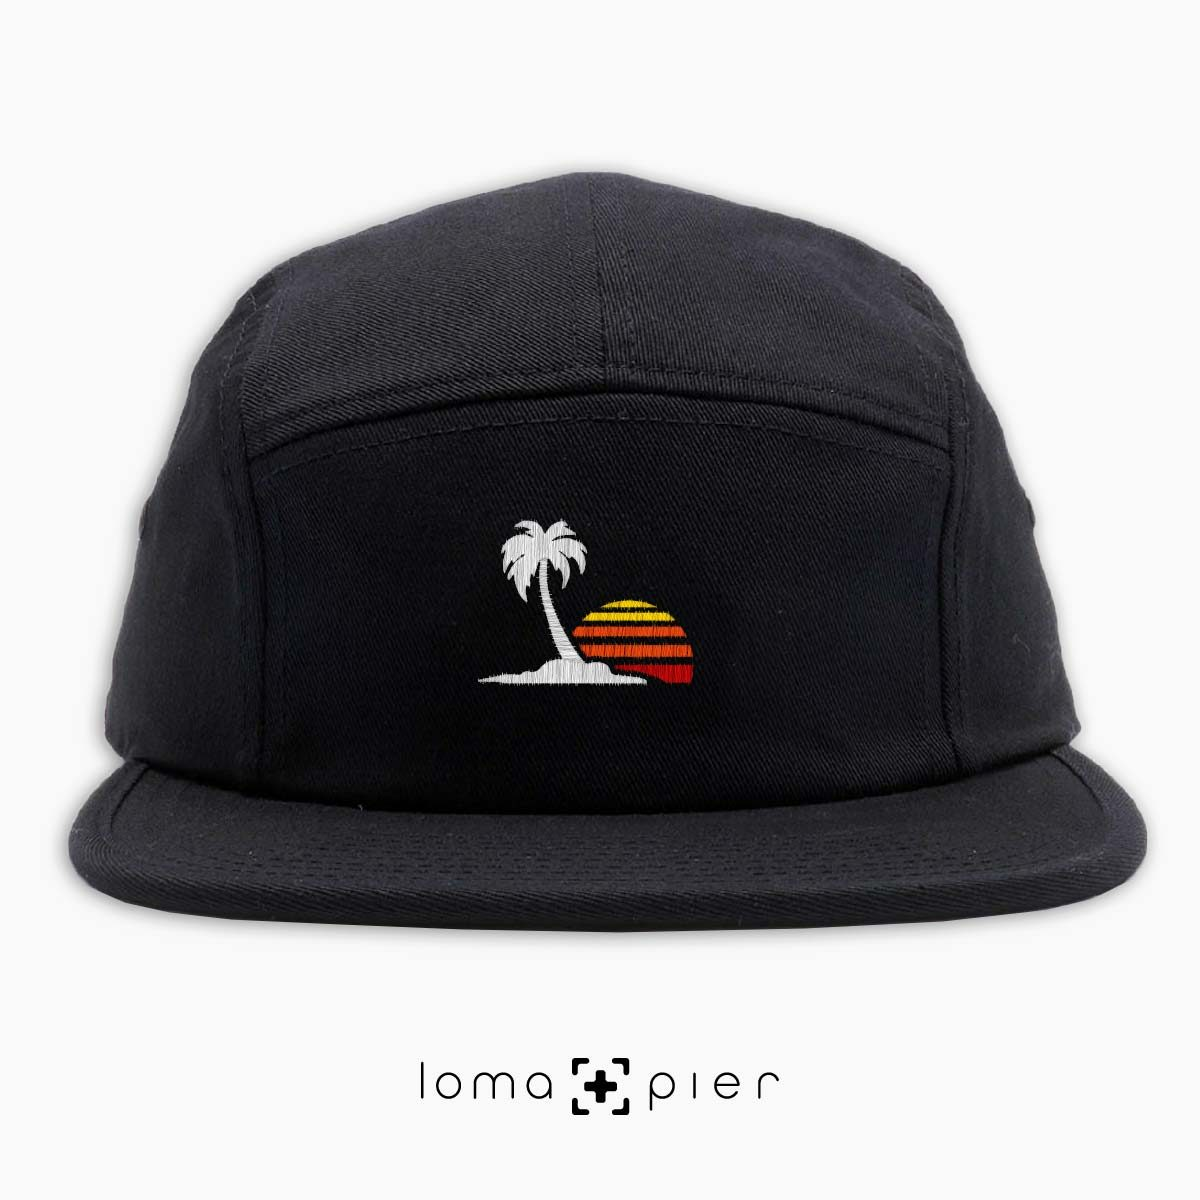 VENICE VIBES icon embroidered on a black cotton 5-panel hat with multicolor thread by loma+pier hat store